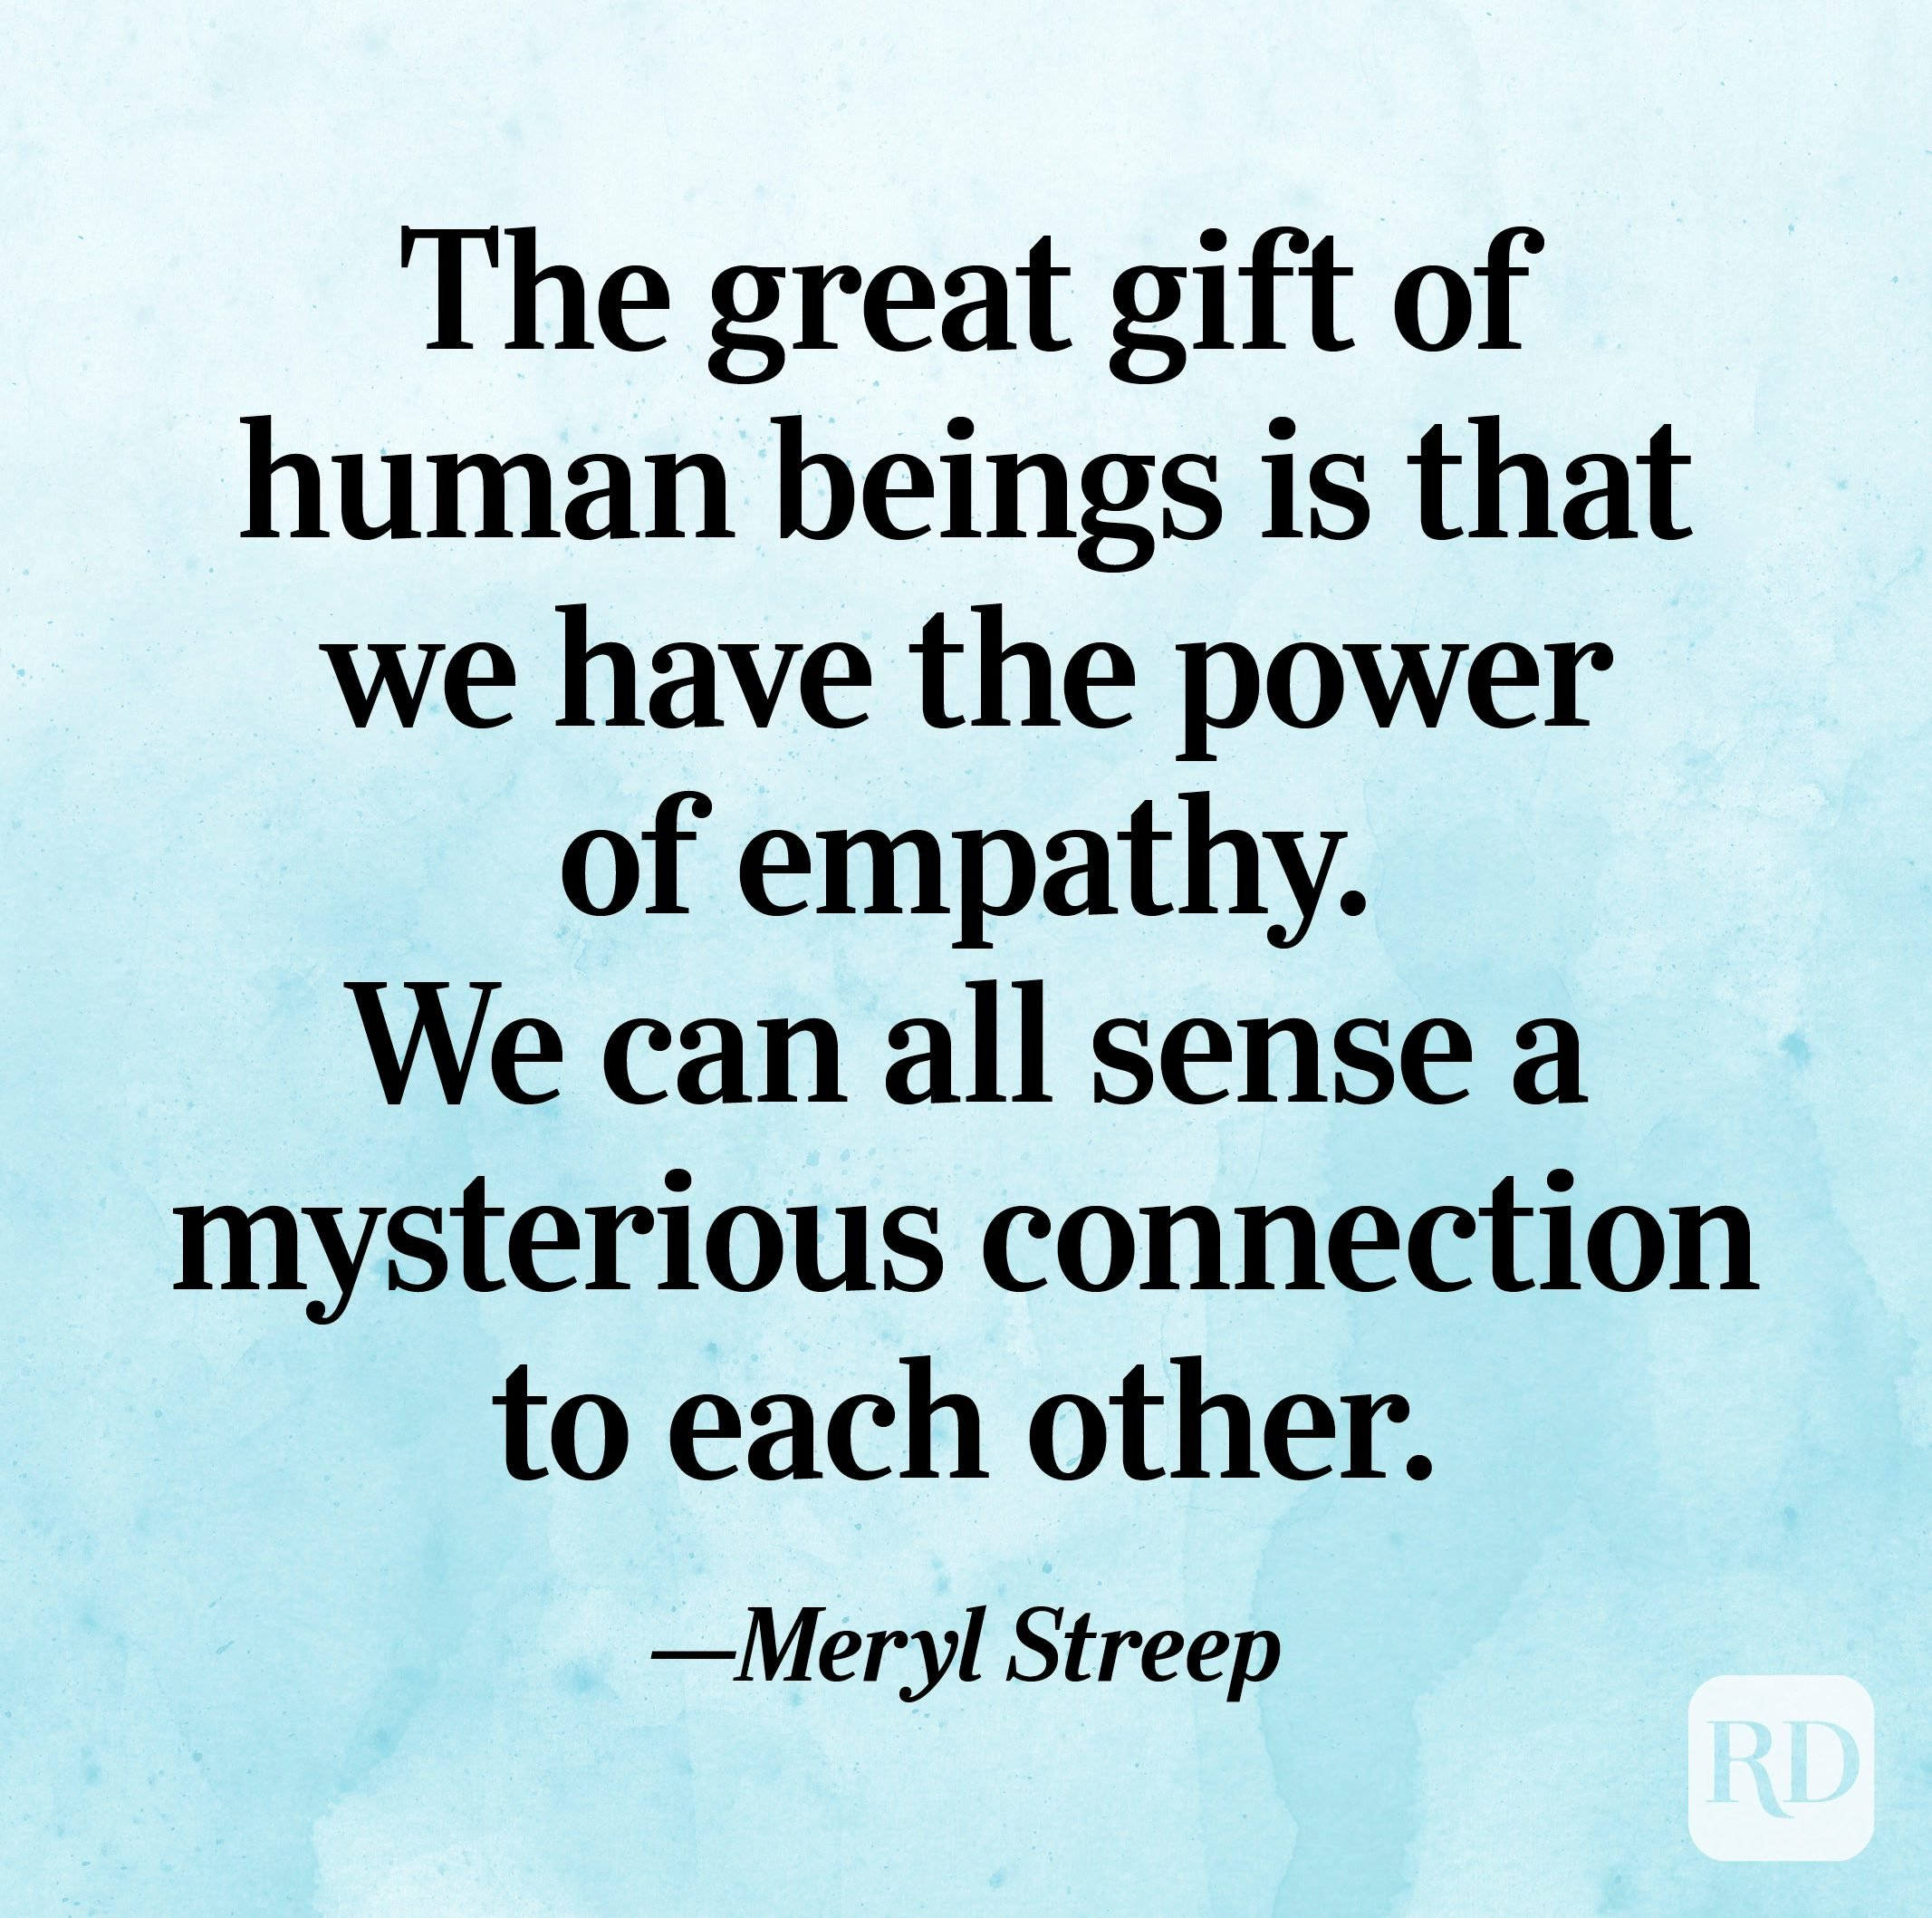 """""""The great gift of human beings is that we have the power of empathy. We can all sense a mysterious connection to each other."""" —Meryl Streep"""